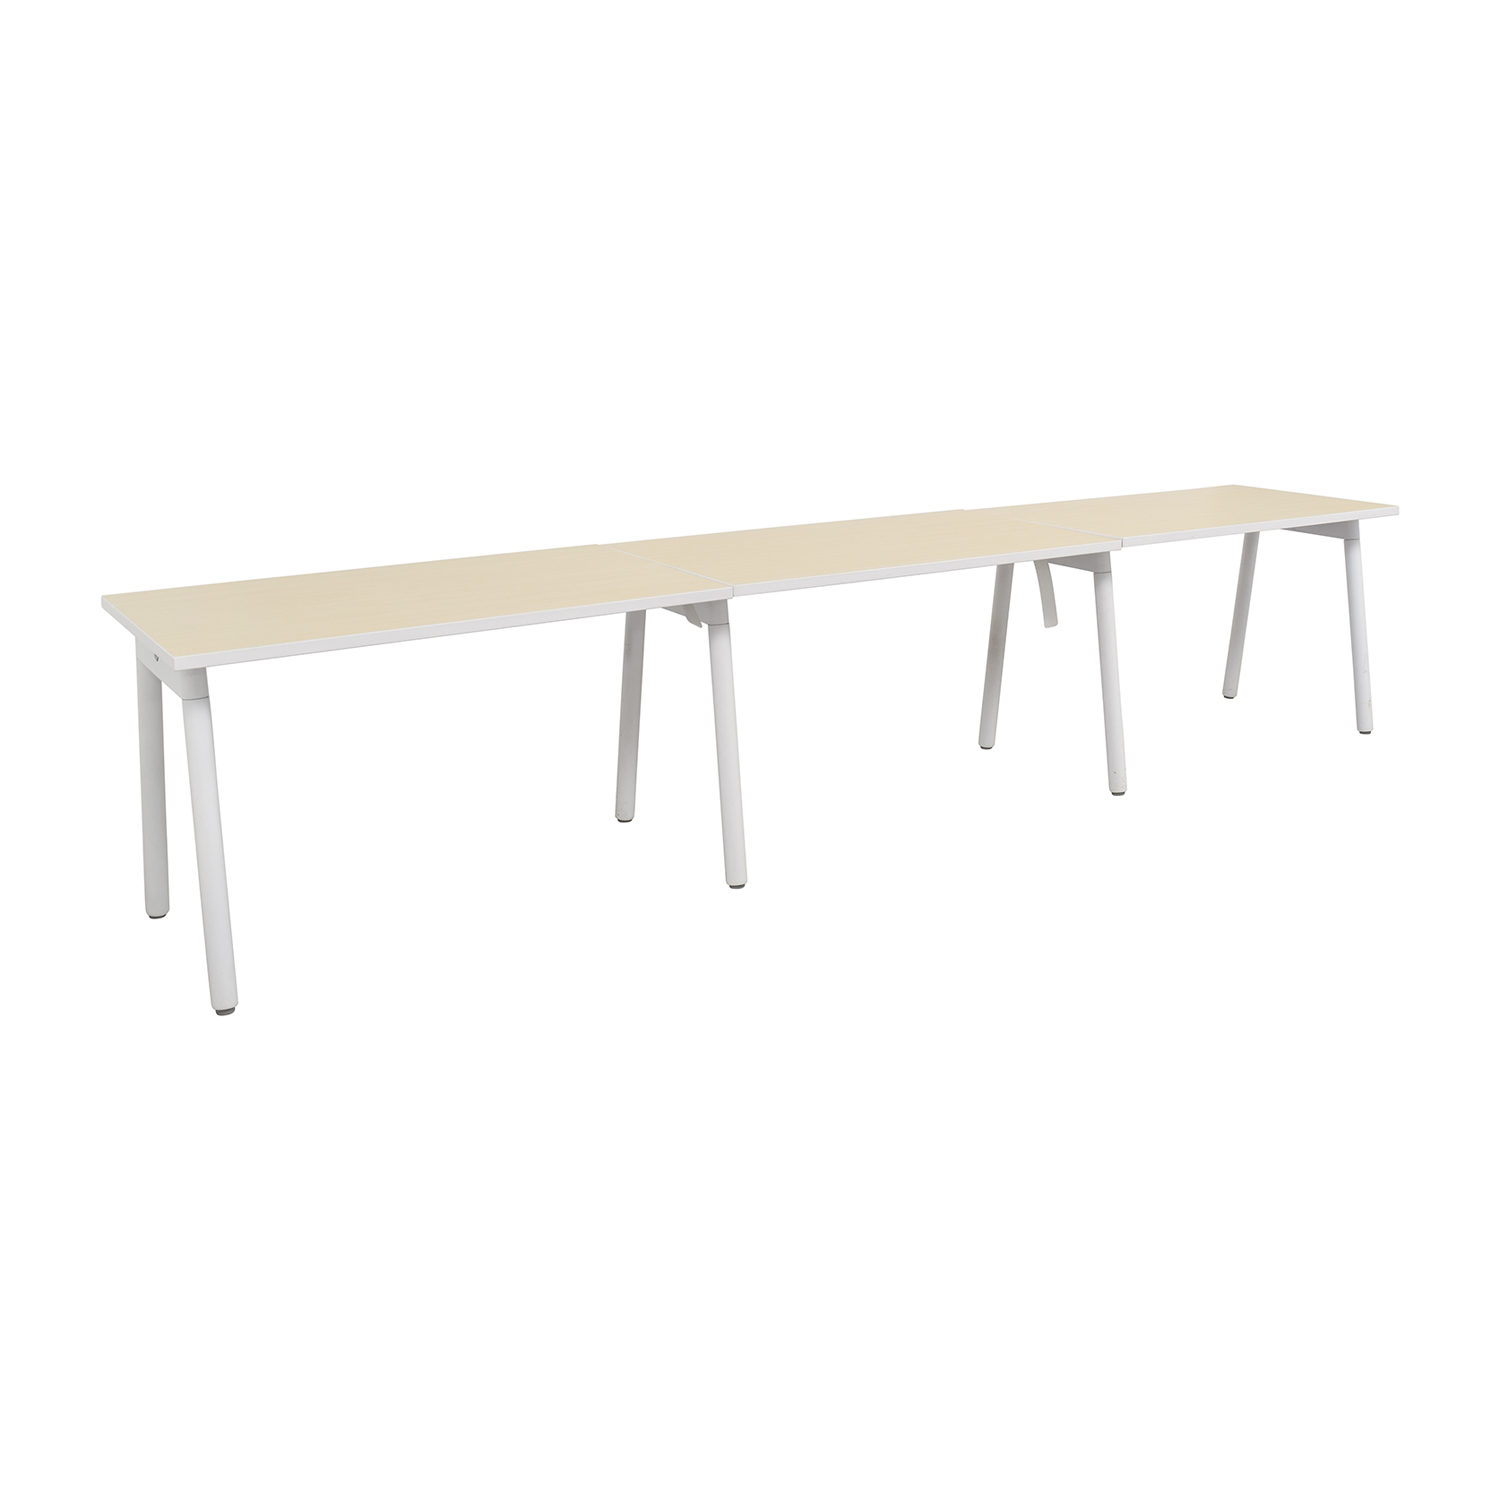 Poppin Poppin White and Natural Office Desk on sale